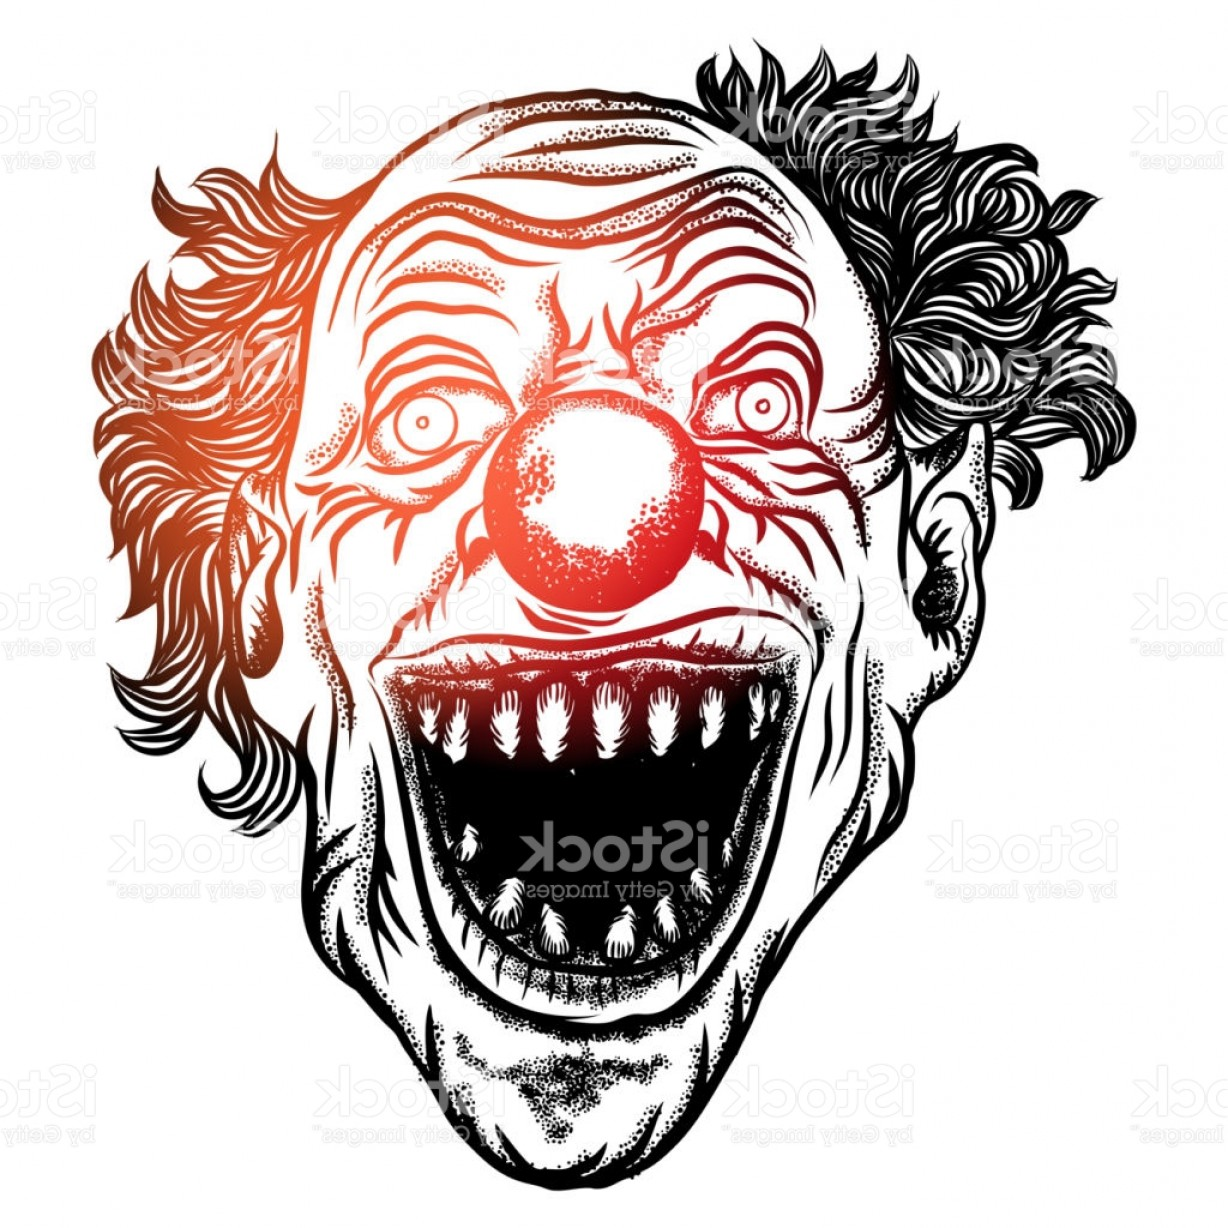 Joker Smile Vector Art: Scary Clown Head Concept Of Circus Horror Film Character Laughing Angry Insane Joker Gm